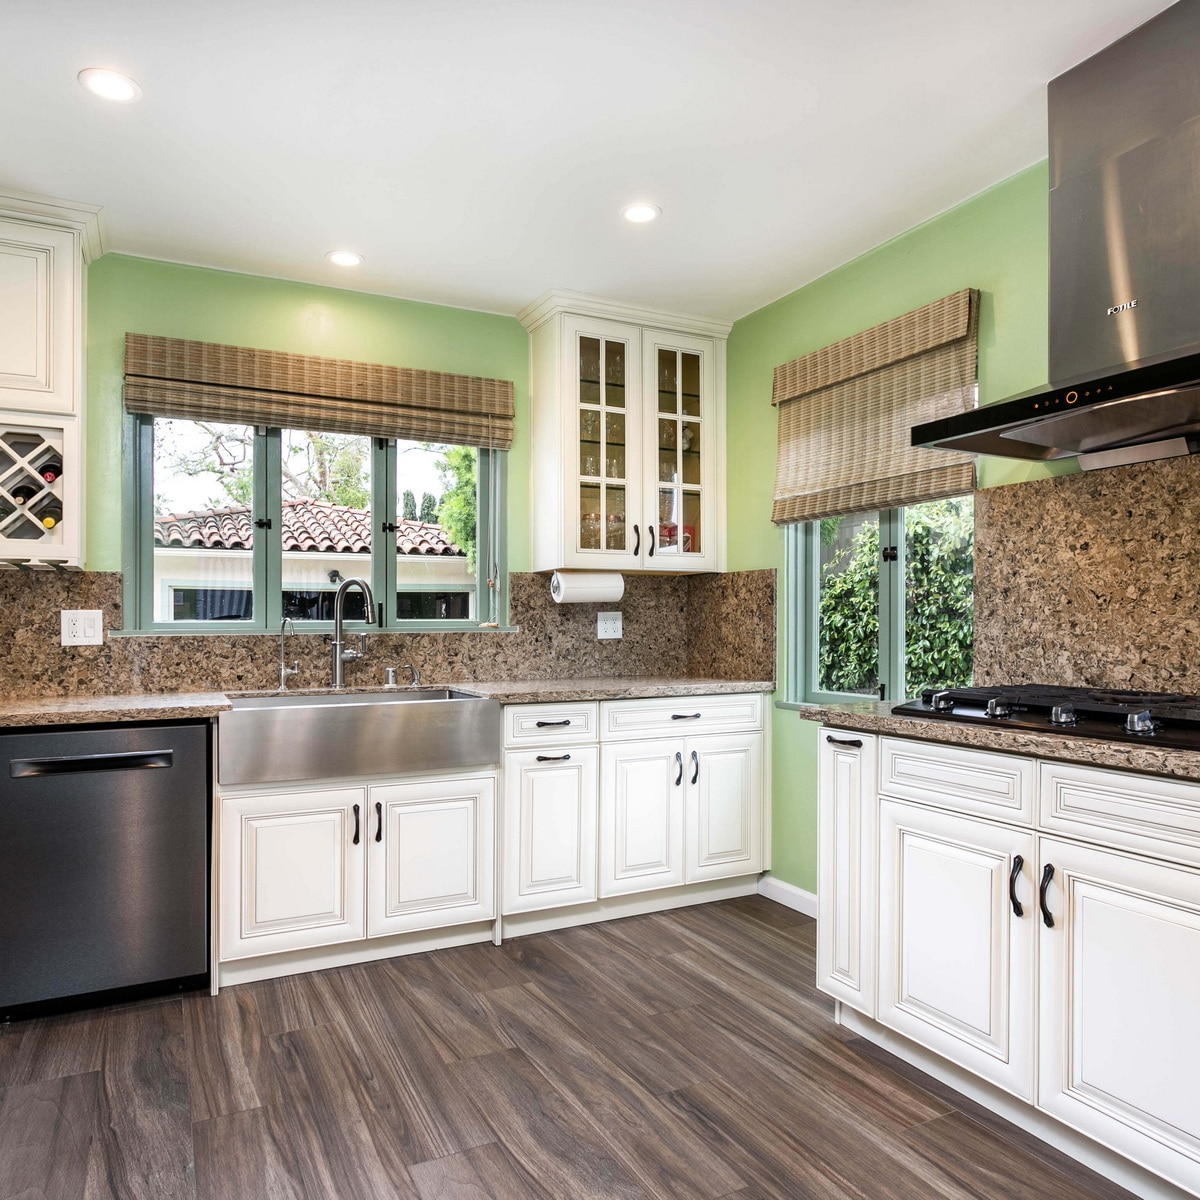 10 Budget Kitchen Ideas with White Shaker Cabinets in 2020   Best Online Cabinets